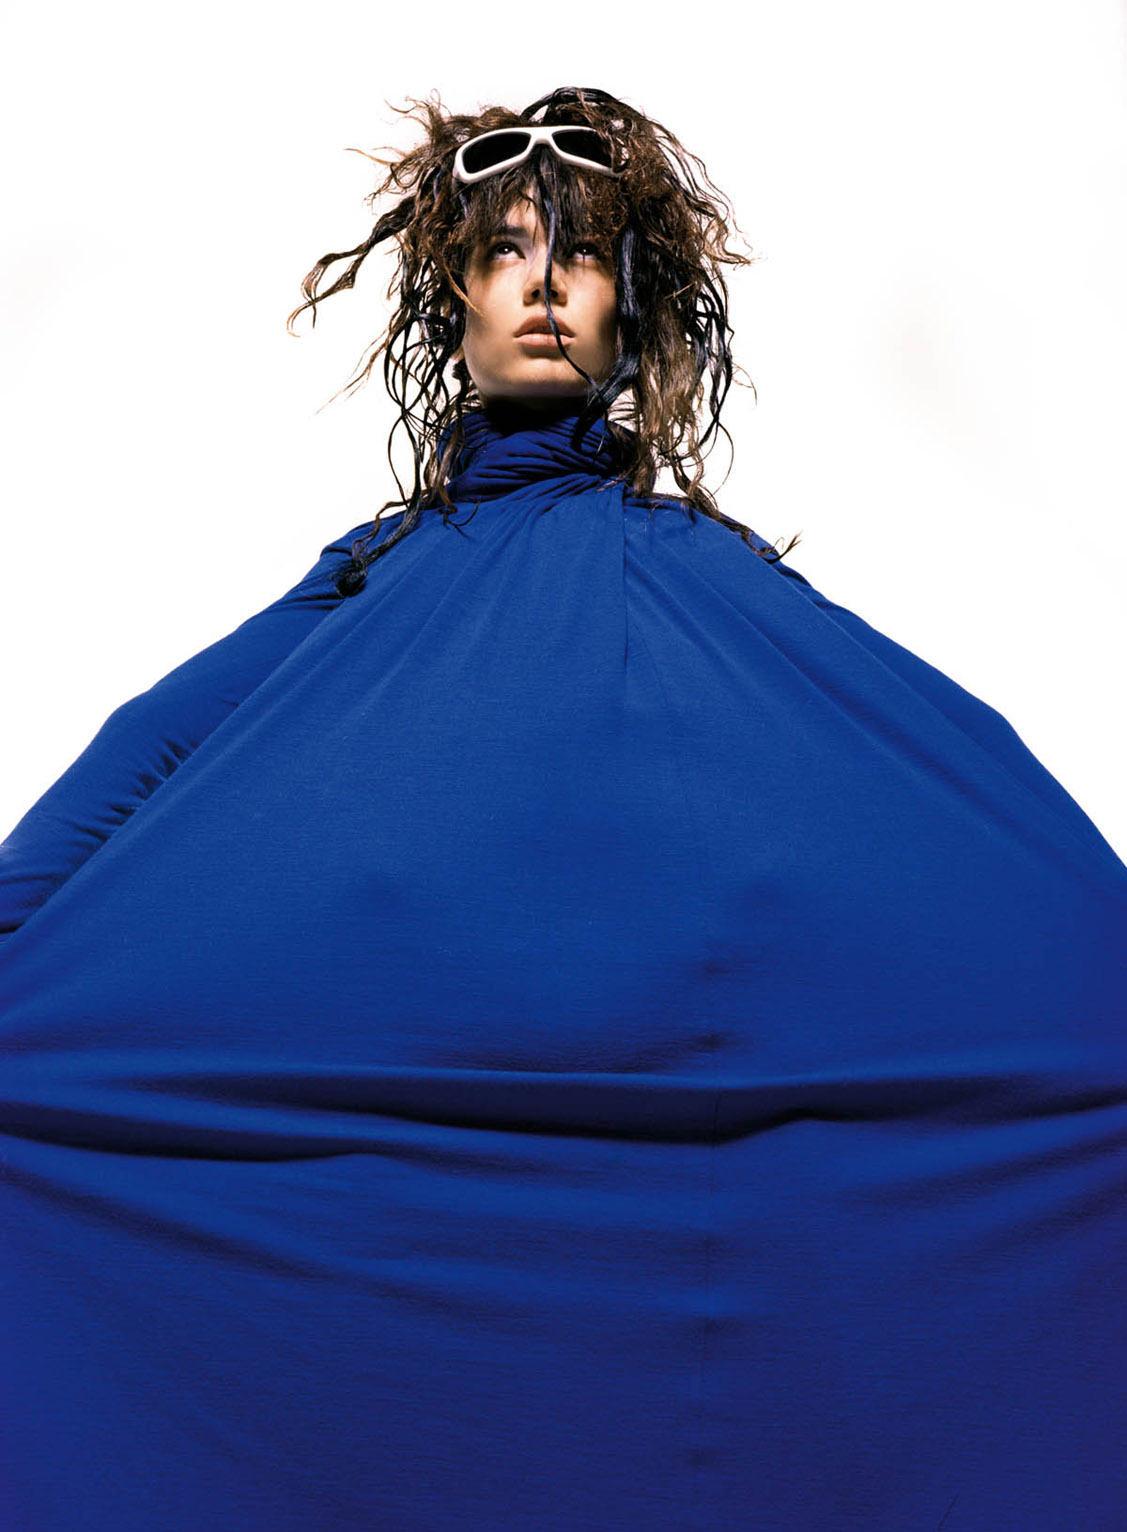 Sheila Marquez by Xevi Muntane / Dazed and Confused UK july 2007